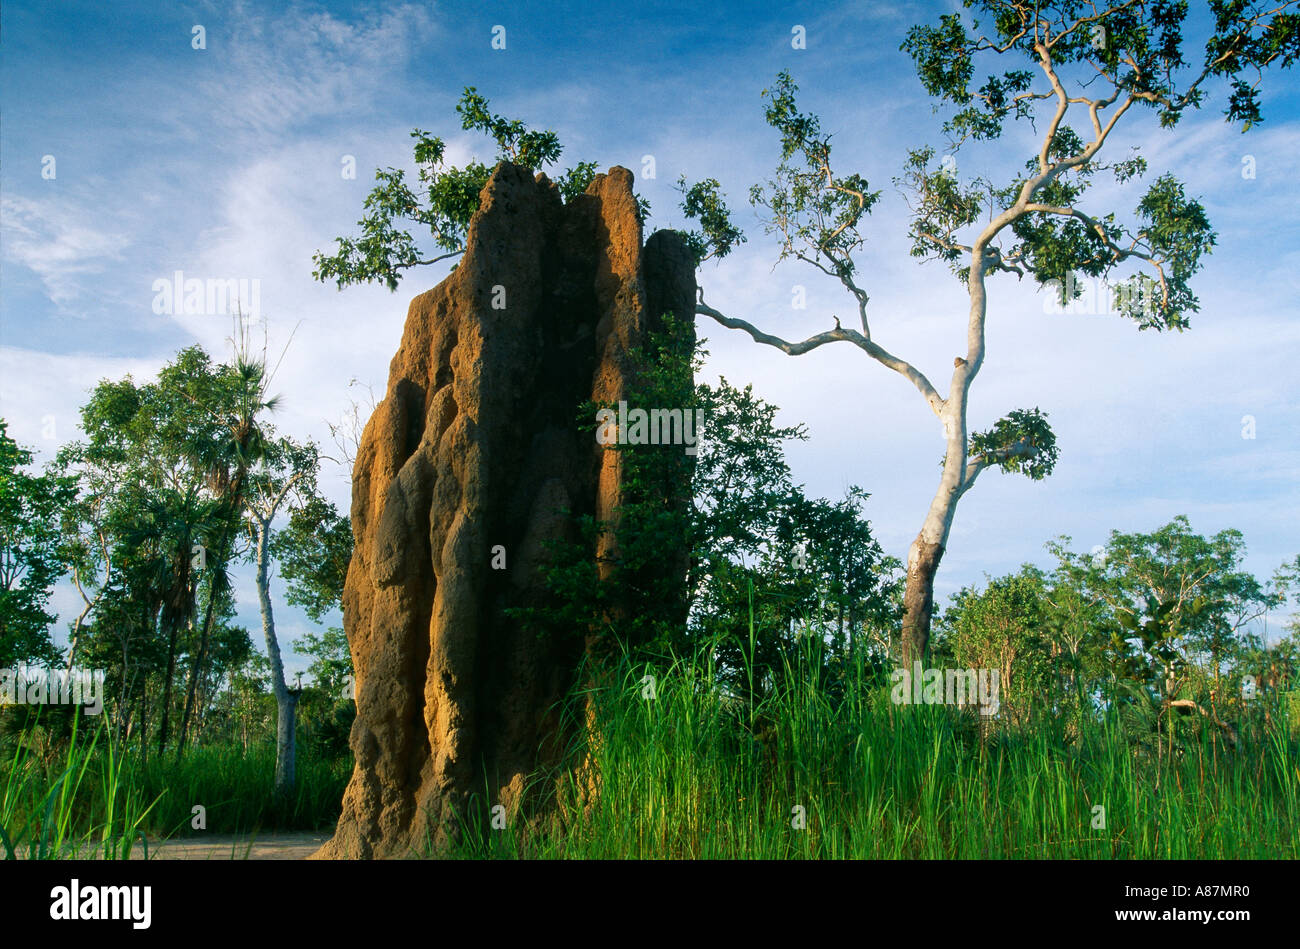 termite mounds Litchfield National Park Northern Territories Tree Australia - Stock Image